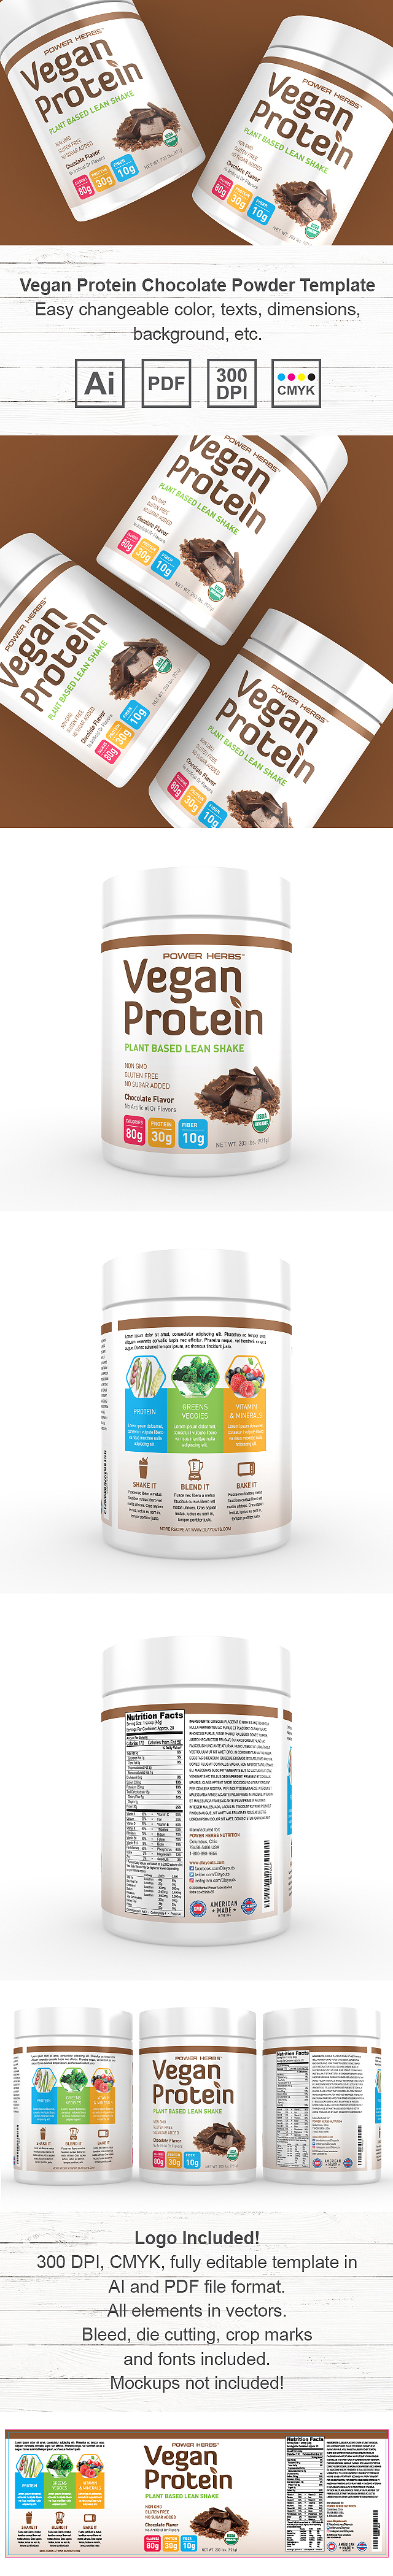 Vegan Protein Chocolate Powder Supplement Label Template